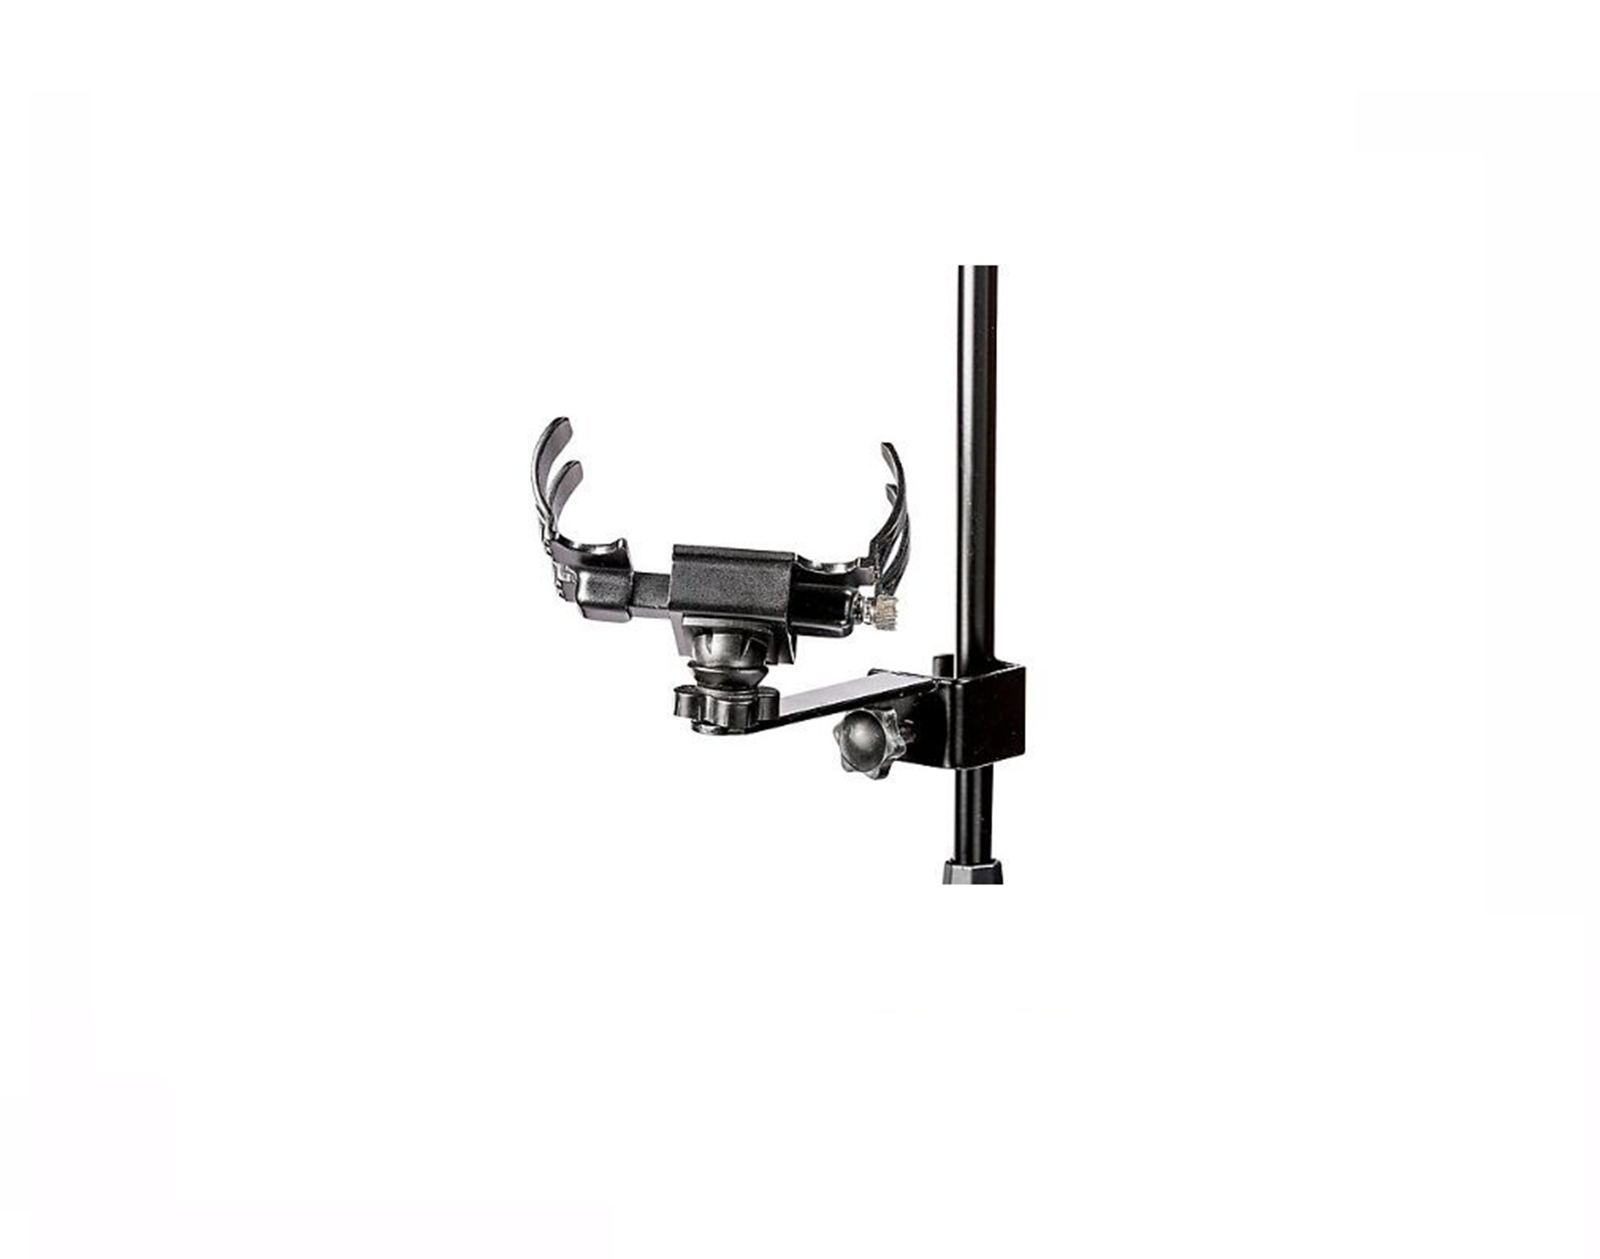 ART SM1 STAND MOUNT PROJ SERIES HEADPHONE CLAMP   CABLE HOLDER STUDIO UTILITY